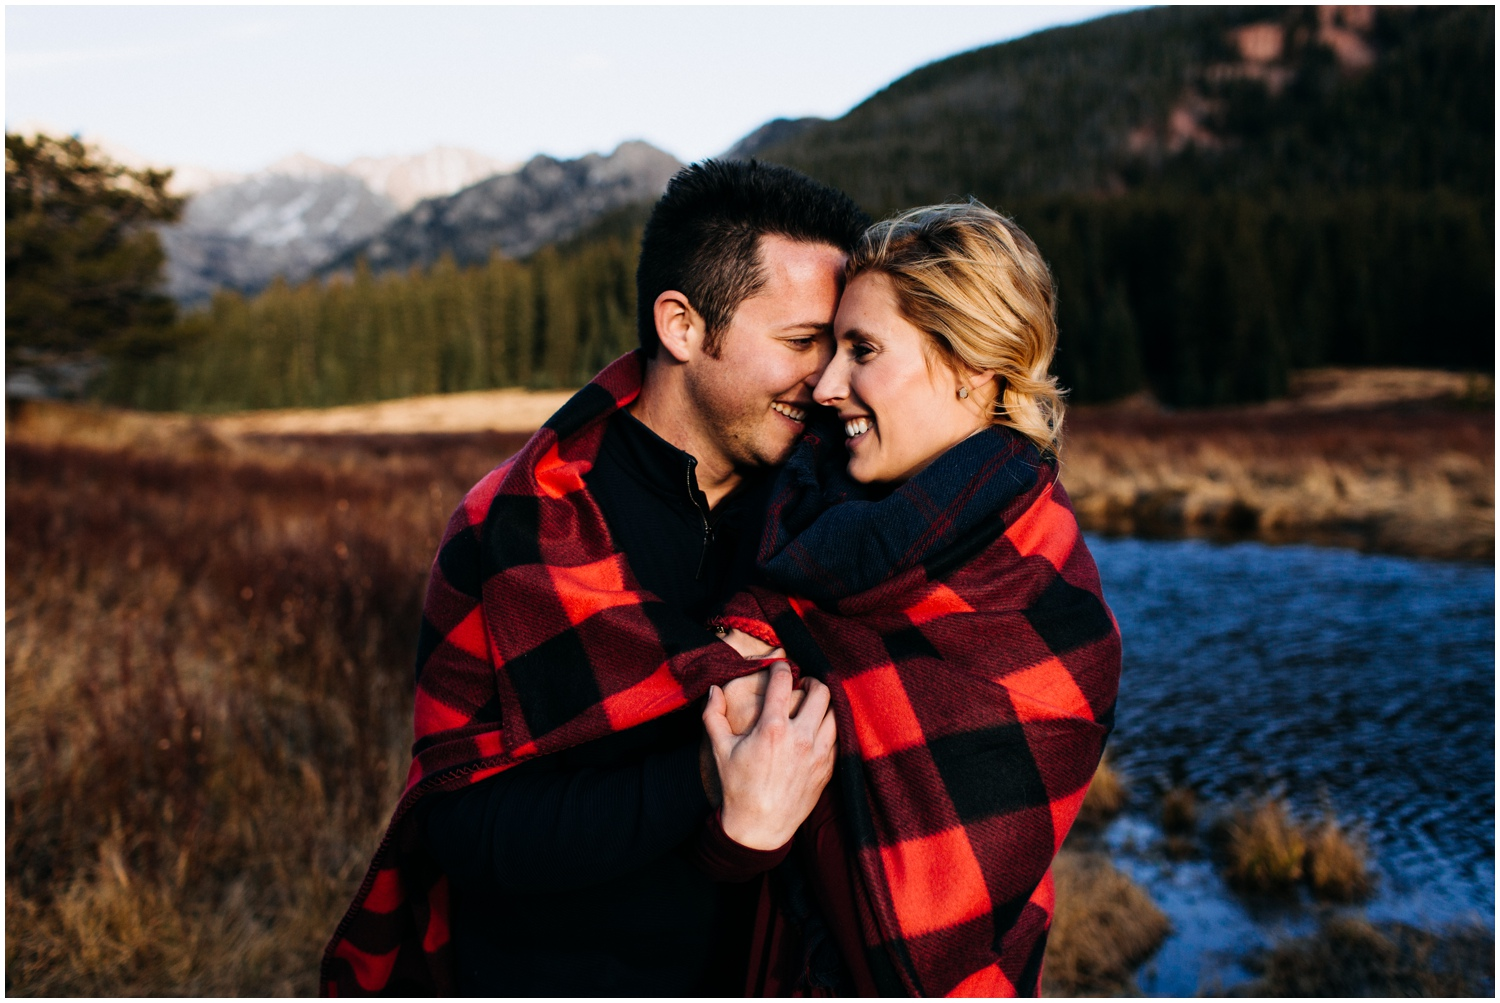 adventure_photo_engagement_session_vail_colorado_taylor_powers__0040.jpg